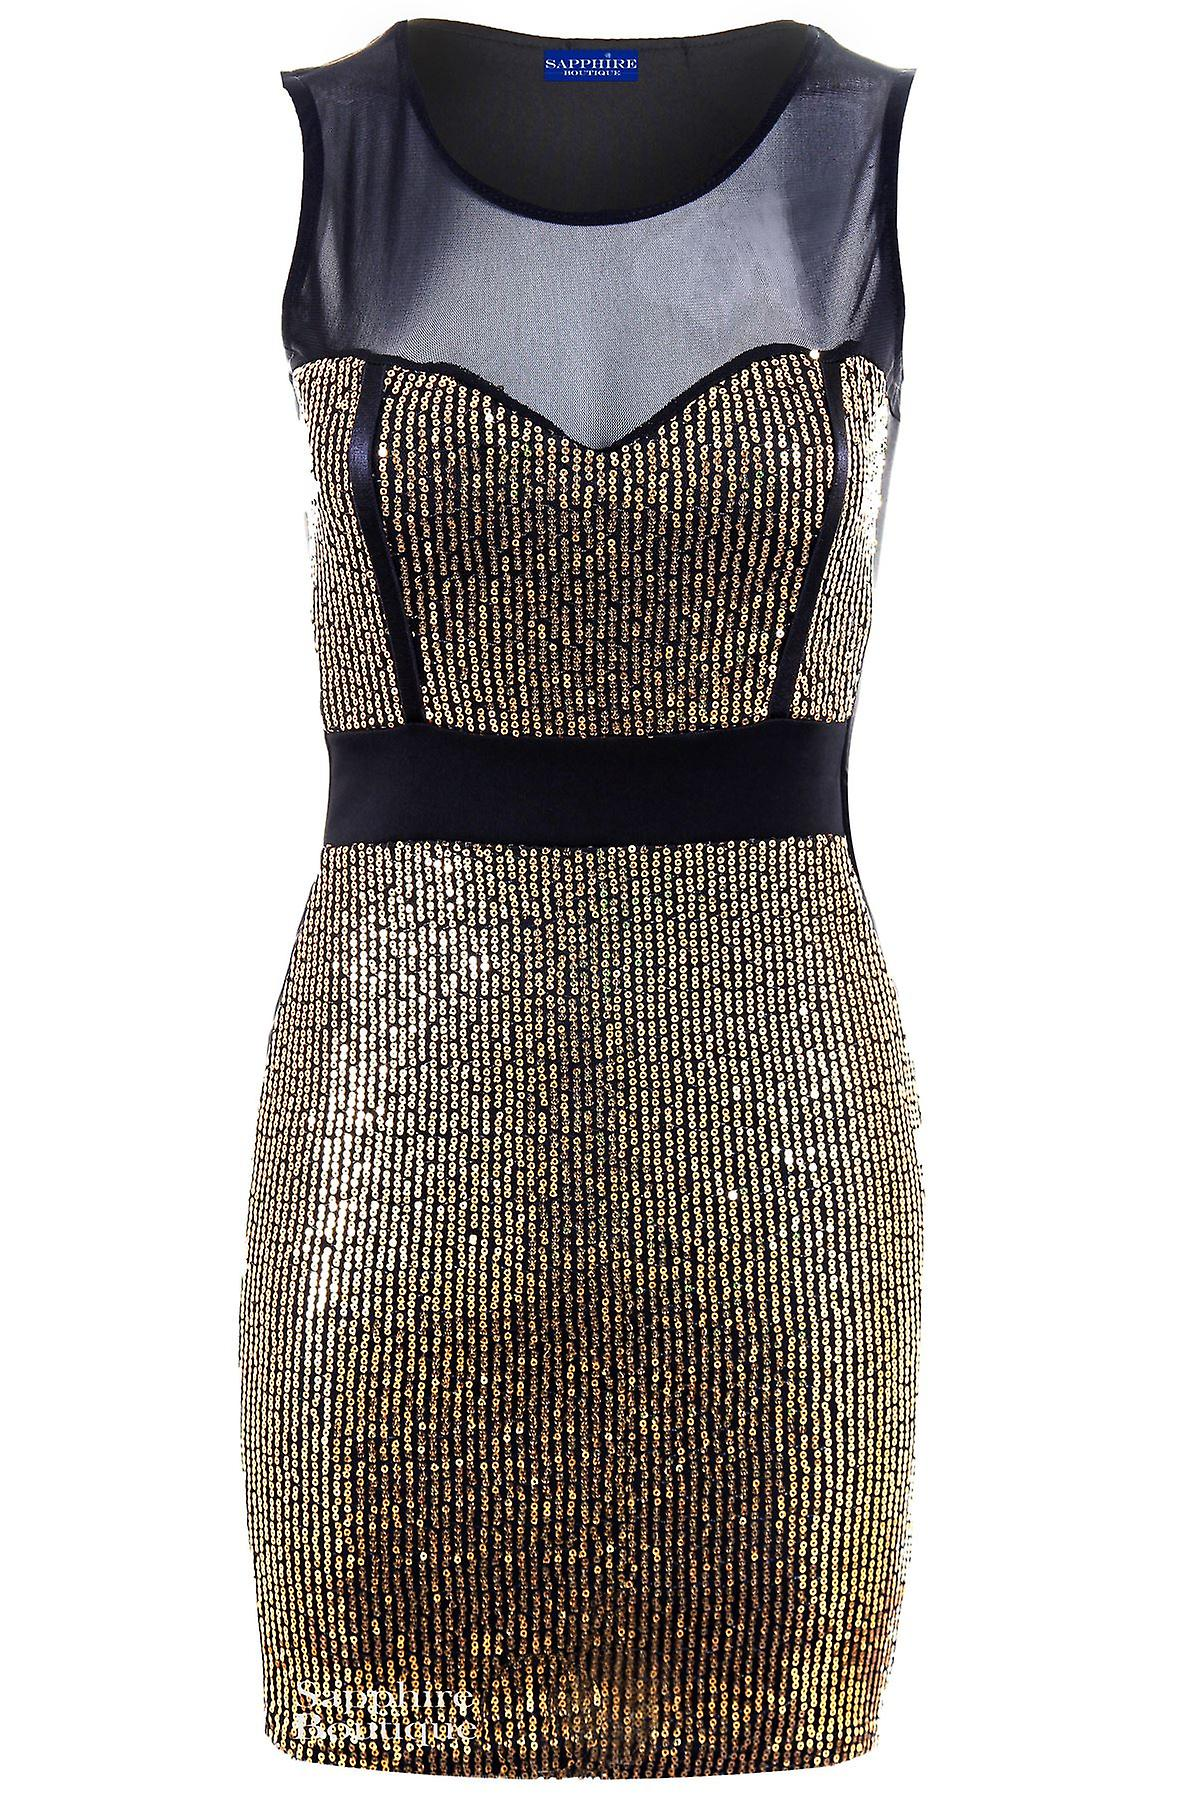 Ladies Sleeveless Mesh Insert Sequin Panel Women's Bodycon Short Party Dress